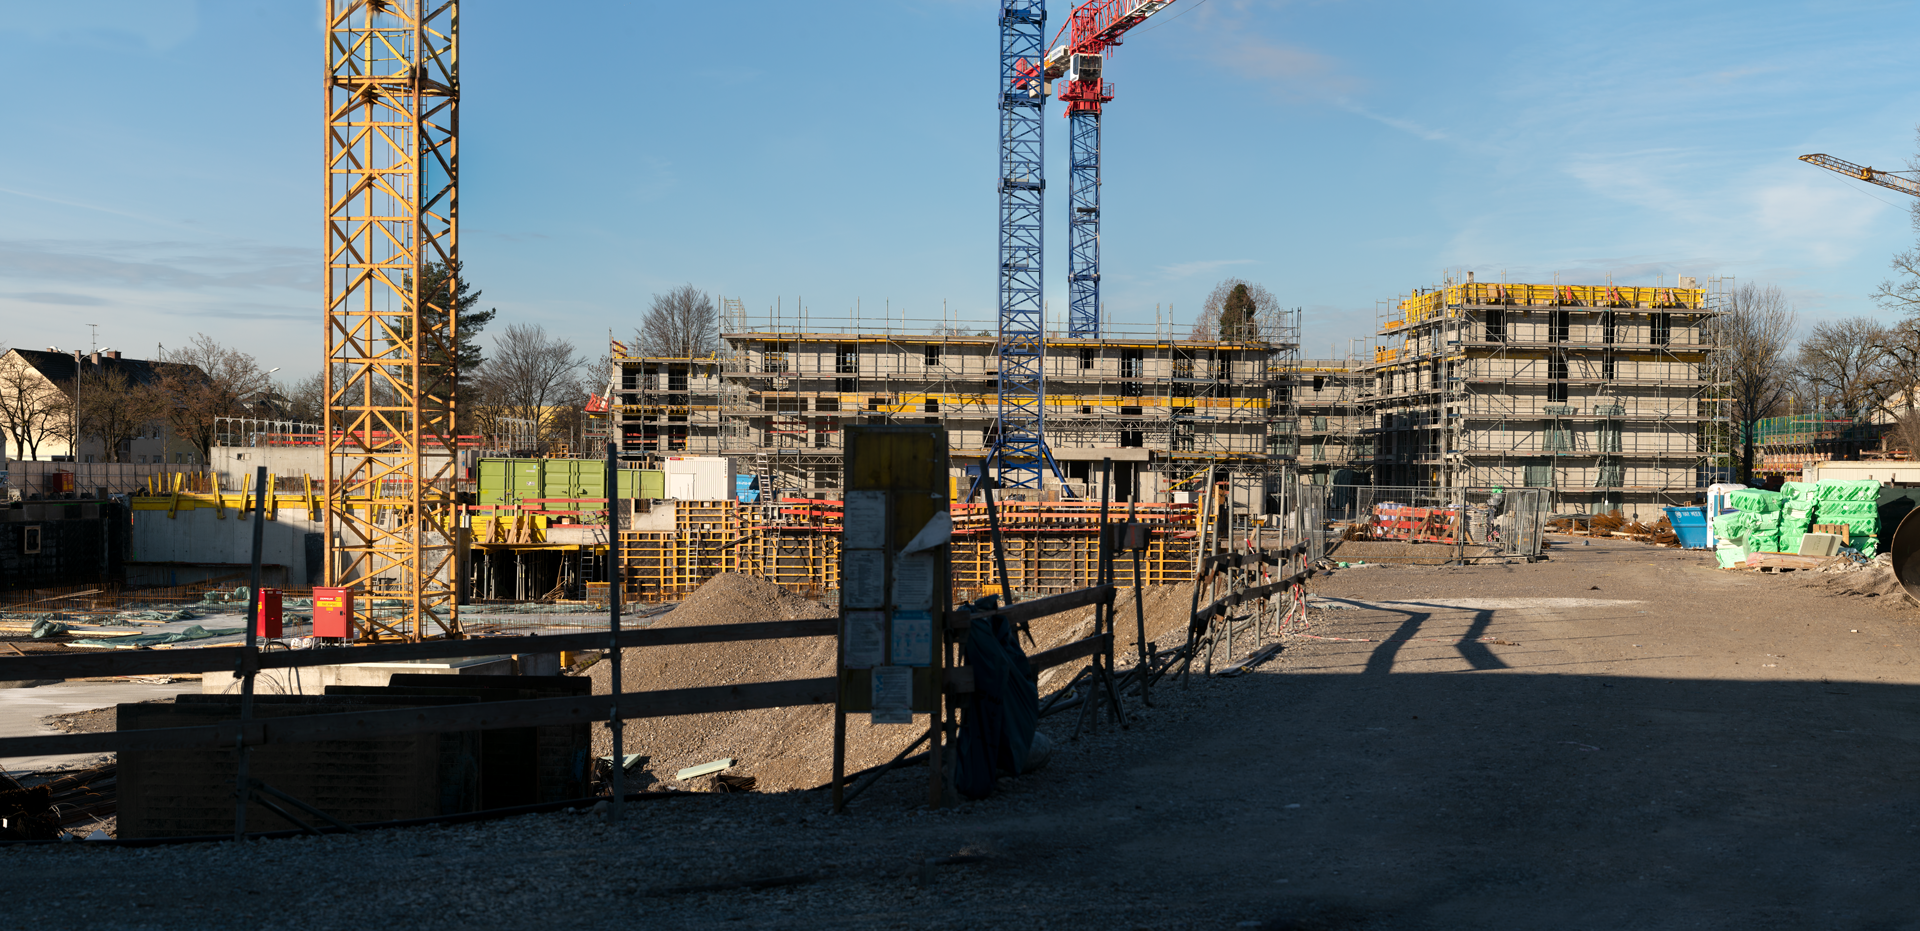 28.12.2018 - Baustelle TRULIVING in Trudering